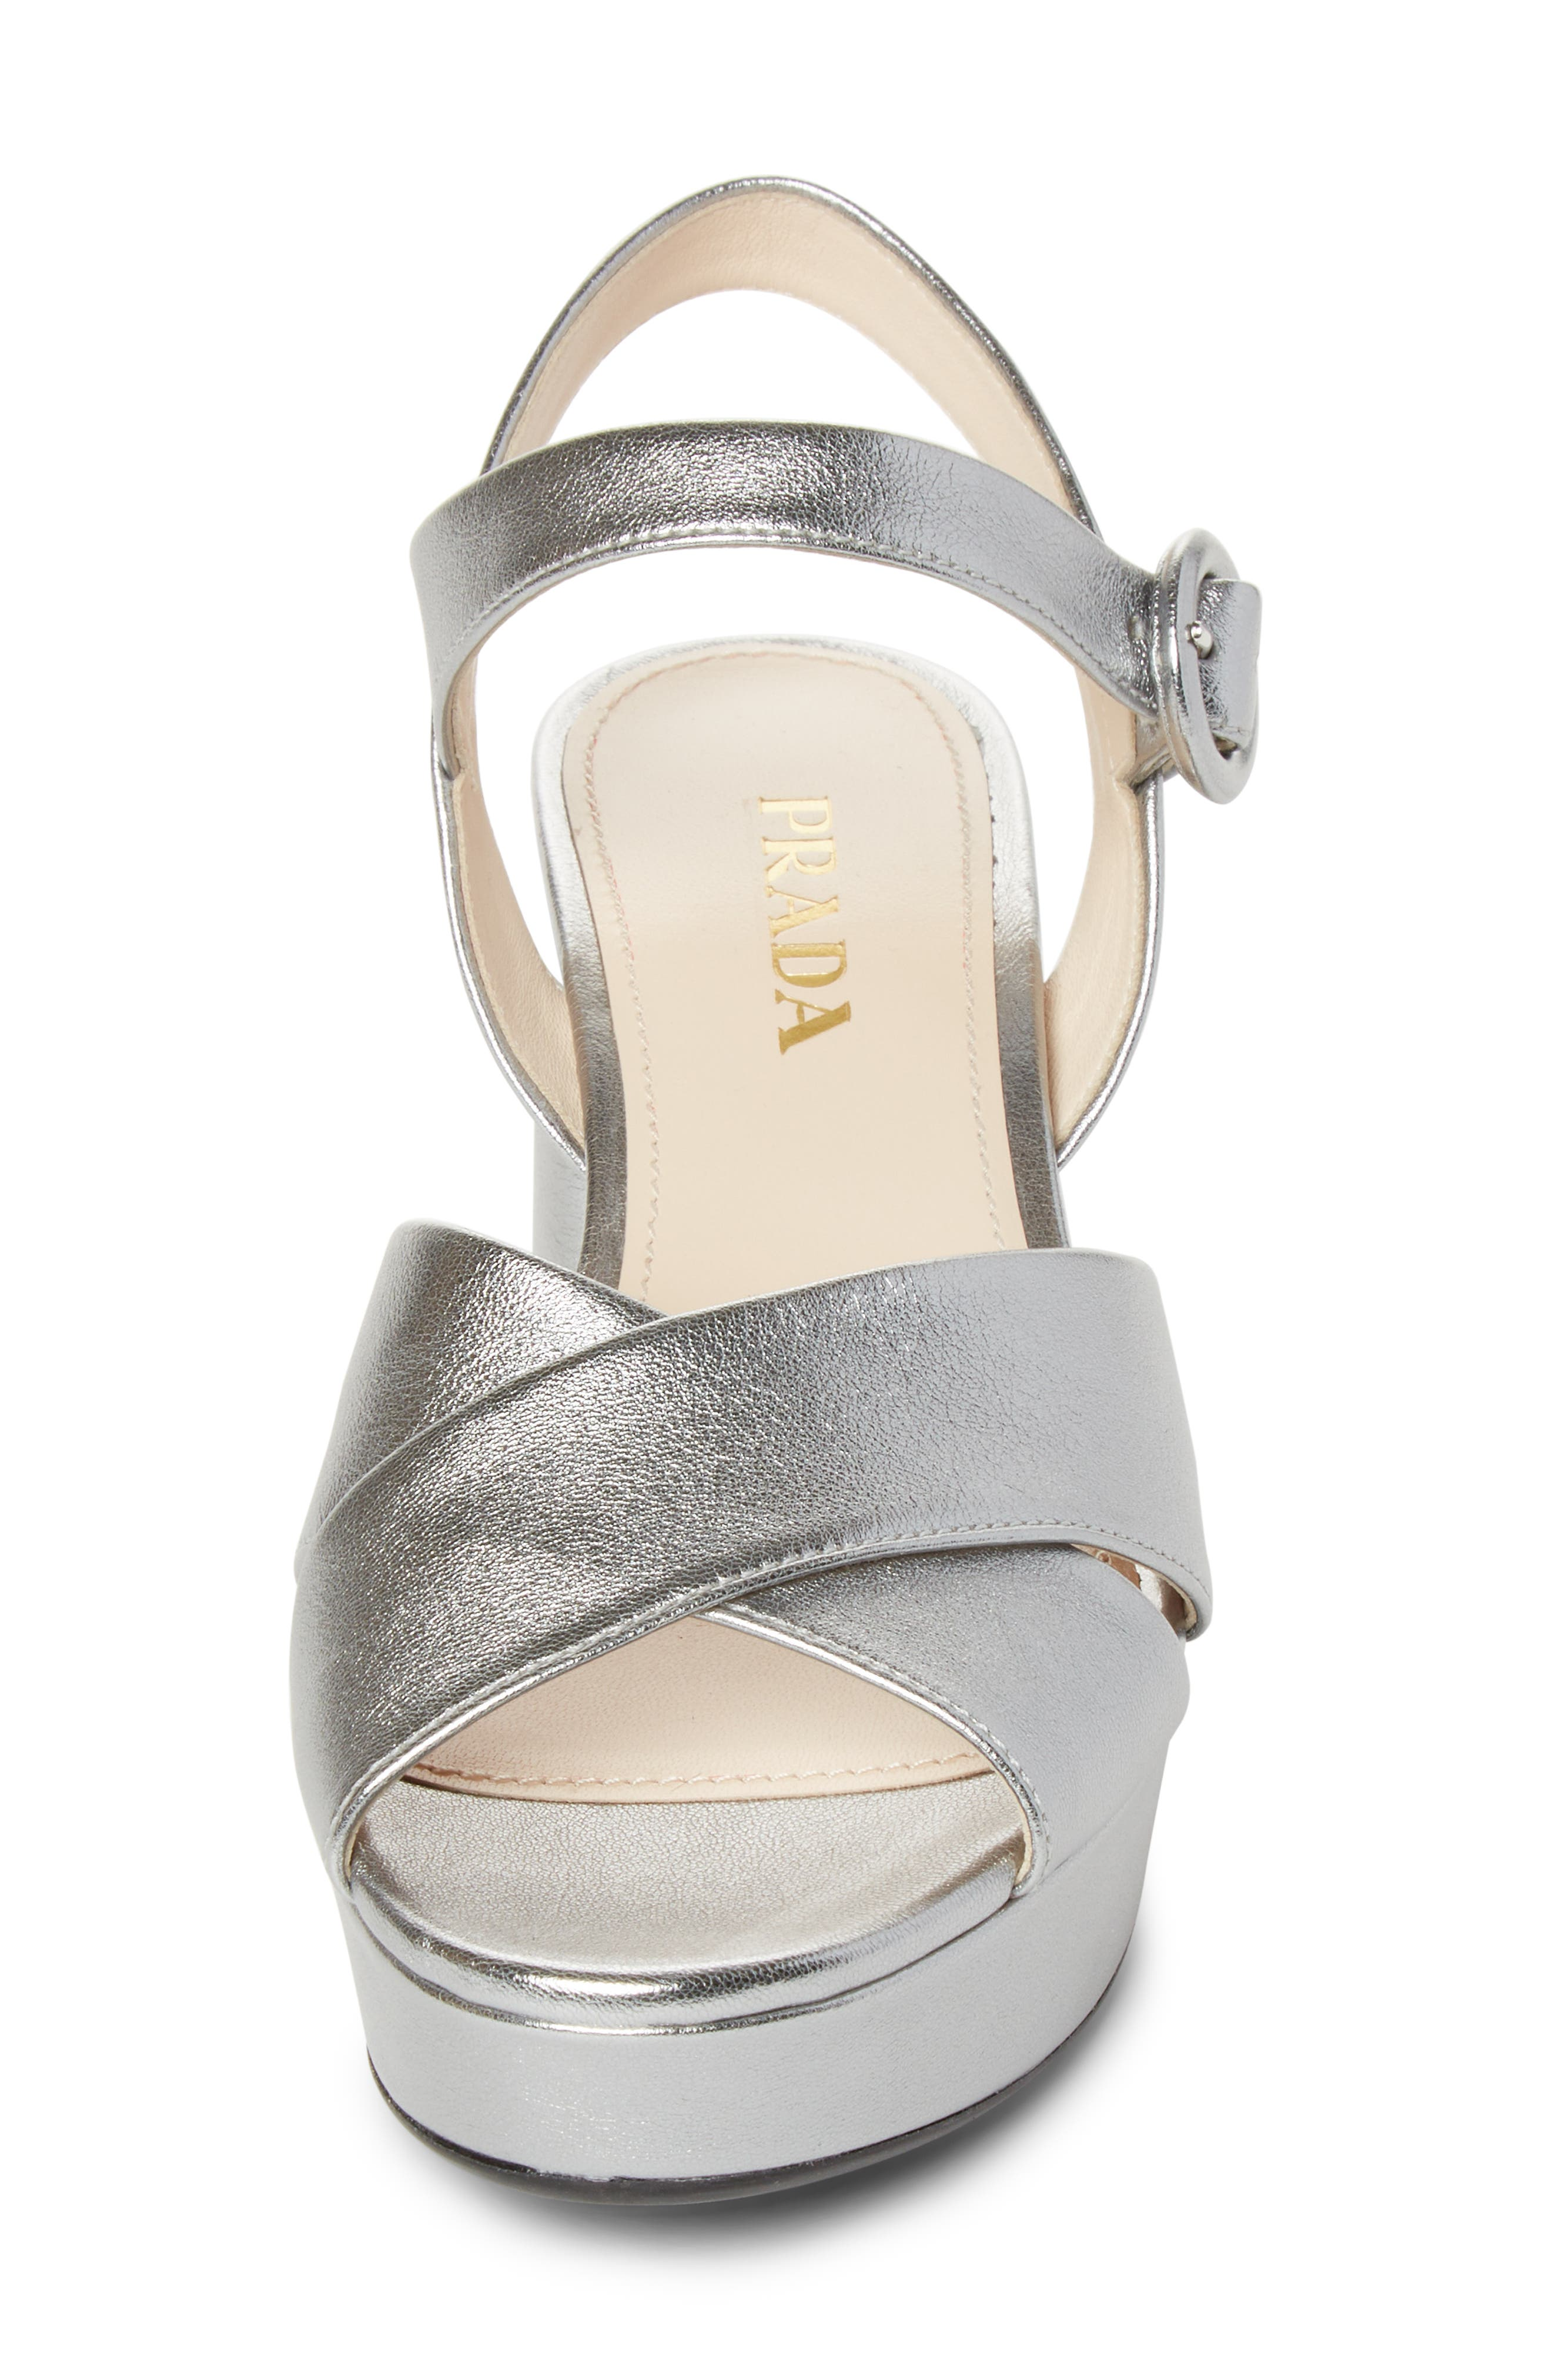 PRADA, Quarter Strap Platform Sandal, Alternate thumbnail 4, color, SILVER